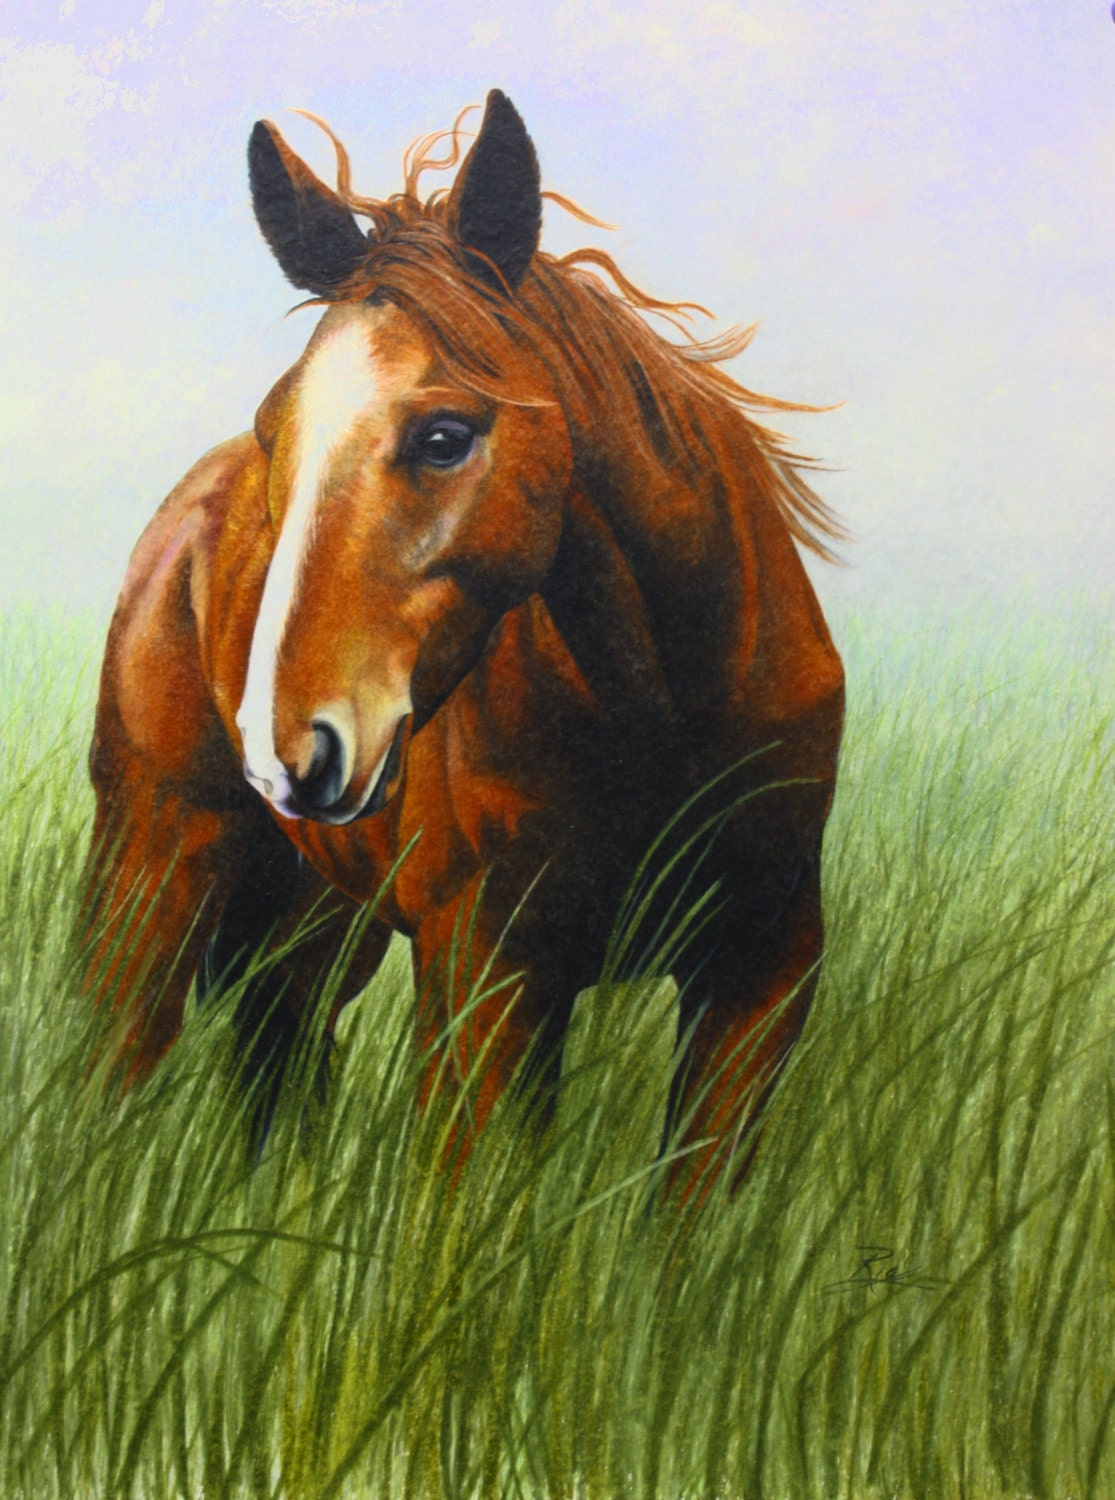 prismacolor art print of horse in the wind 8x10